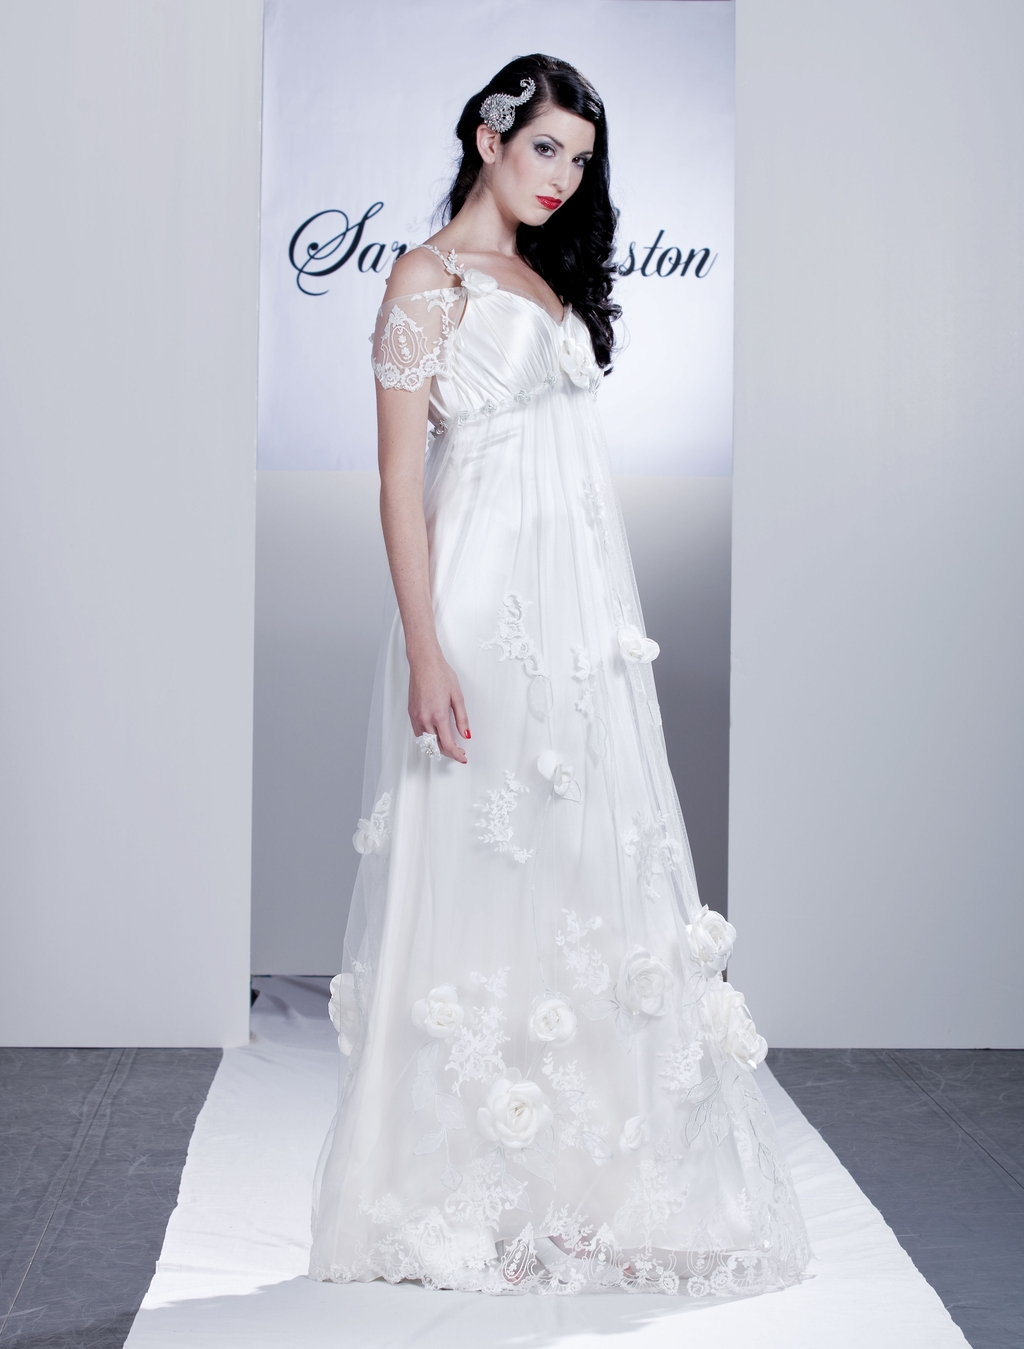 Wysteria-white-wedding-dress-large-floral-rosette-appliques-on-skirt-off-the-shoulder-sheer-lace-sleeves.full